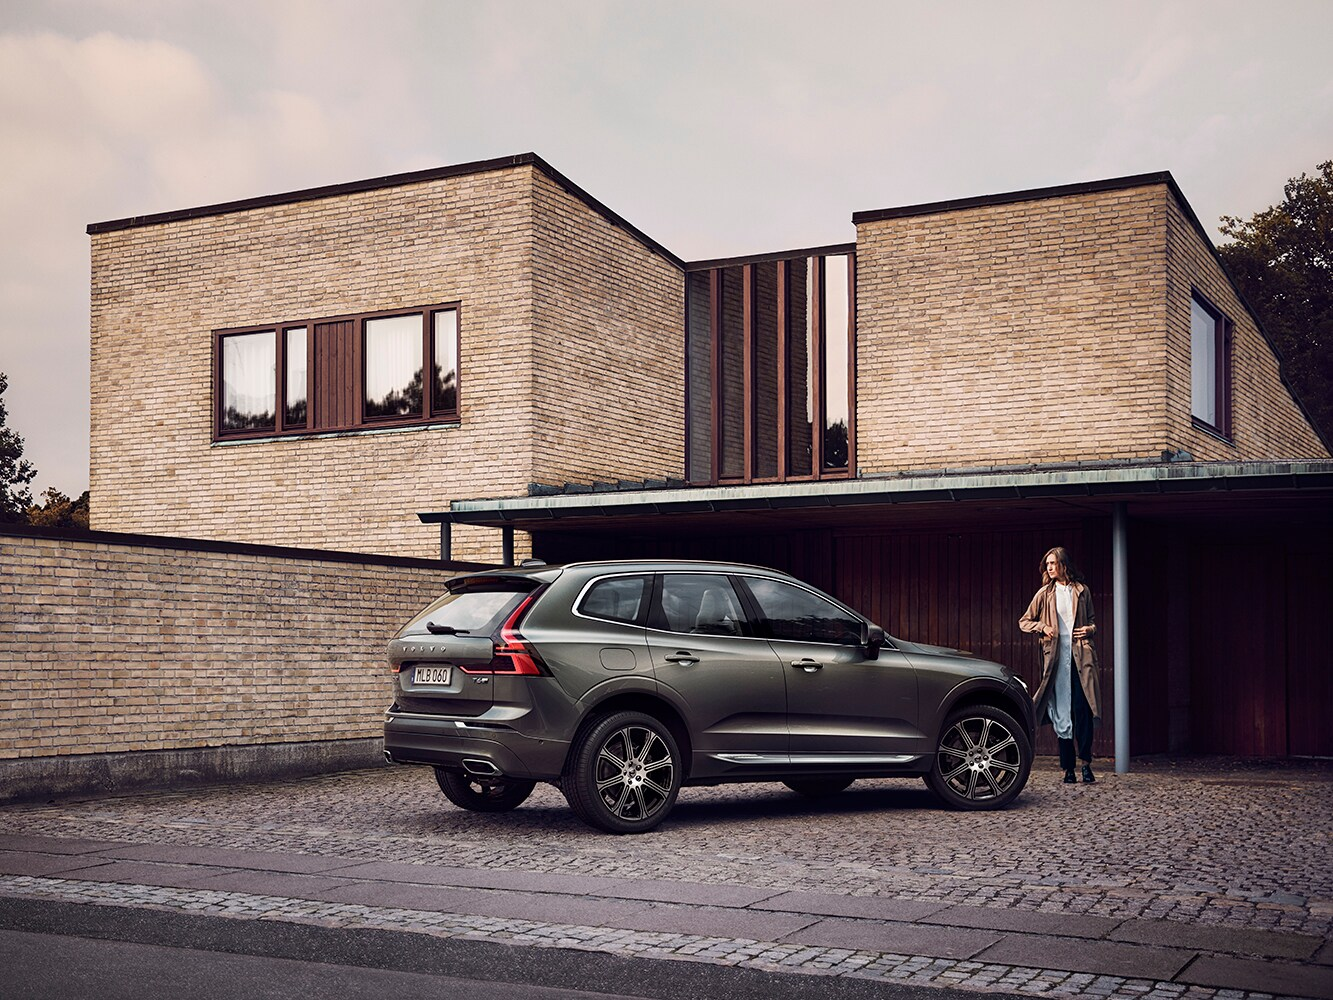 The New Volvo XC60 mid-sized SUV Crossover parked on a driveway